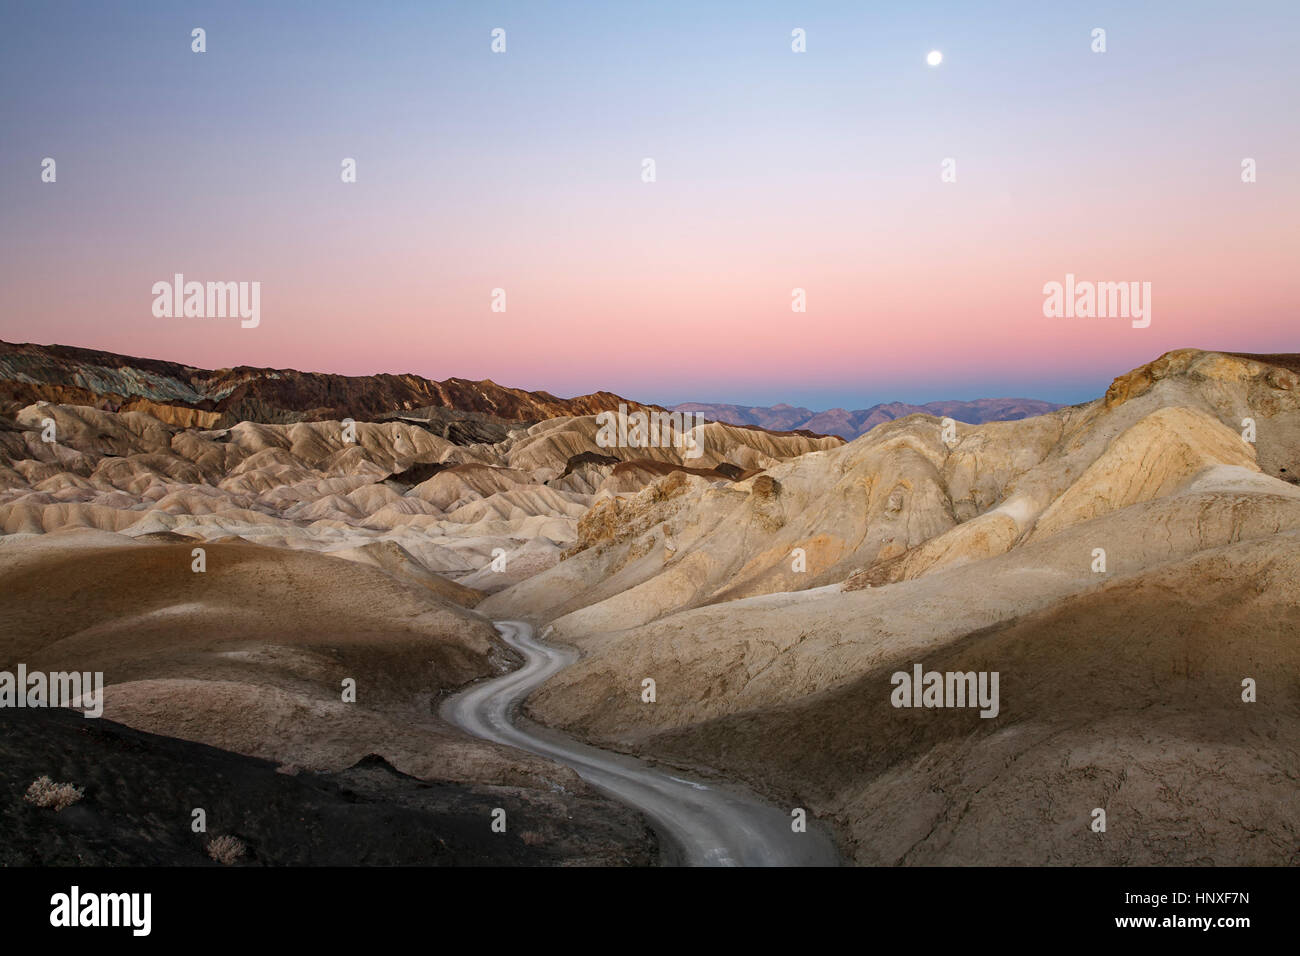 Moon, badlands and road, Twenty Mule Team Canyon, Death Valley National Park, California USA - Stock Image